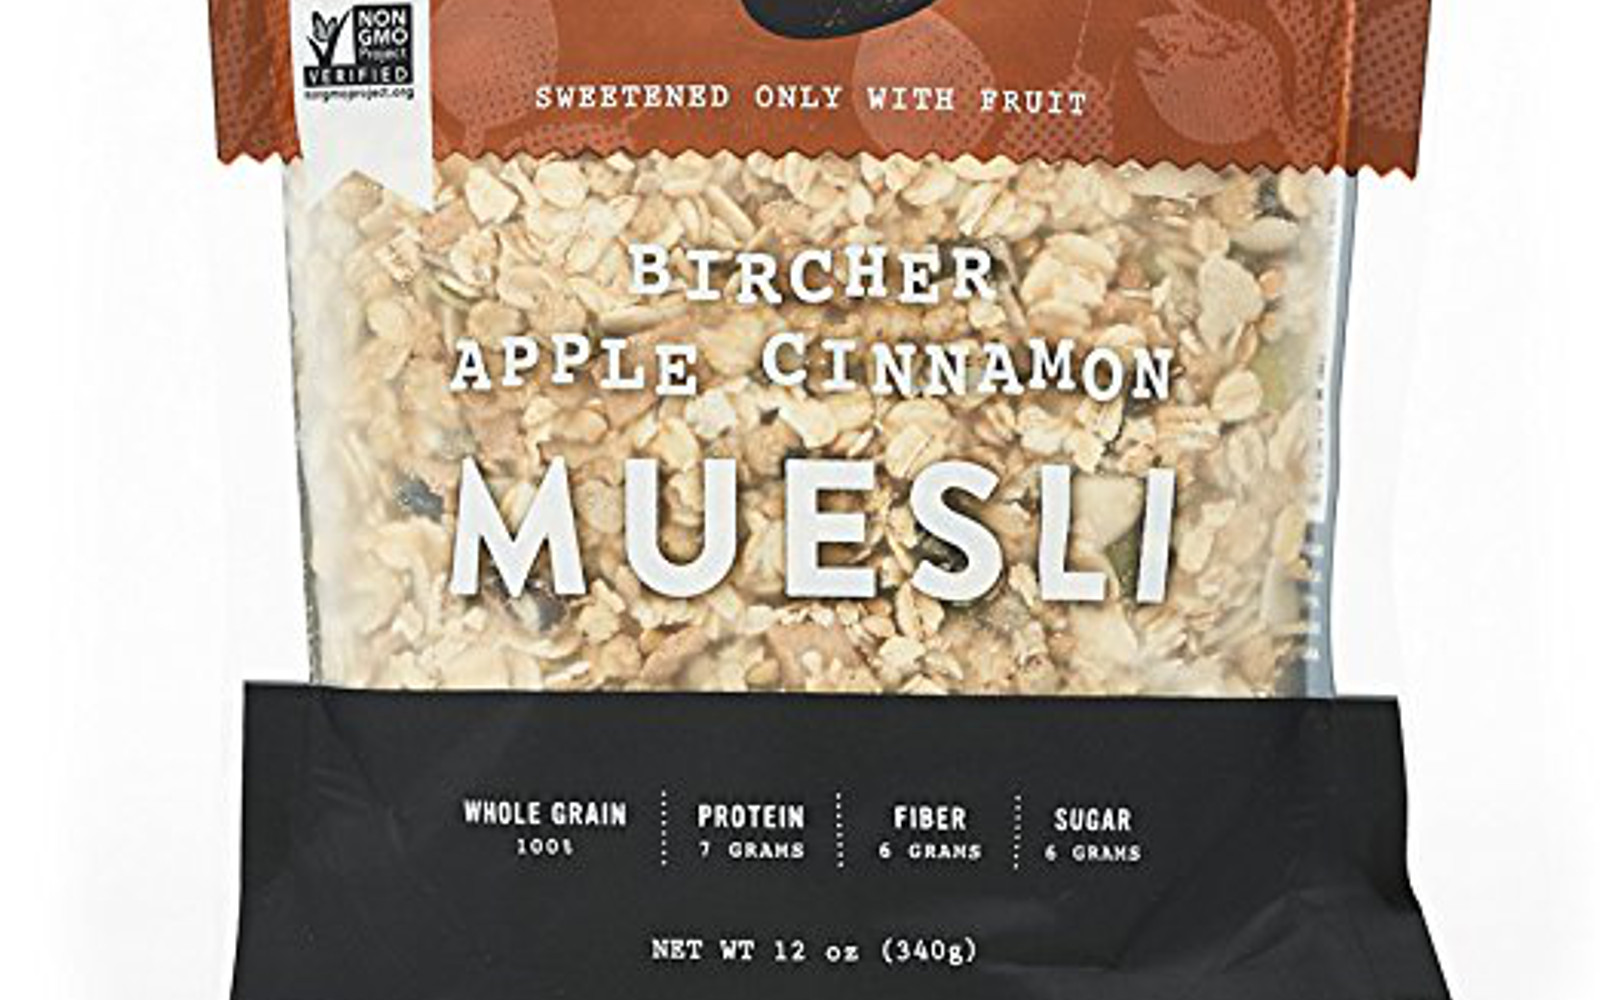 Seven Sundays Muesli - Bircher Unsweetened Apple Cinnamon – Non-GMO Certified, Gluten Free, Hot or Cold Breakfast Muesli 12 oz